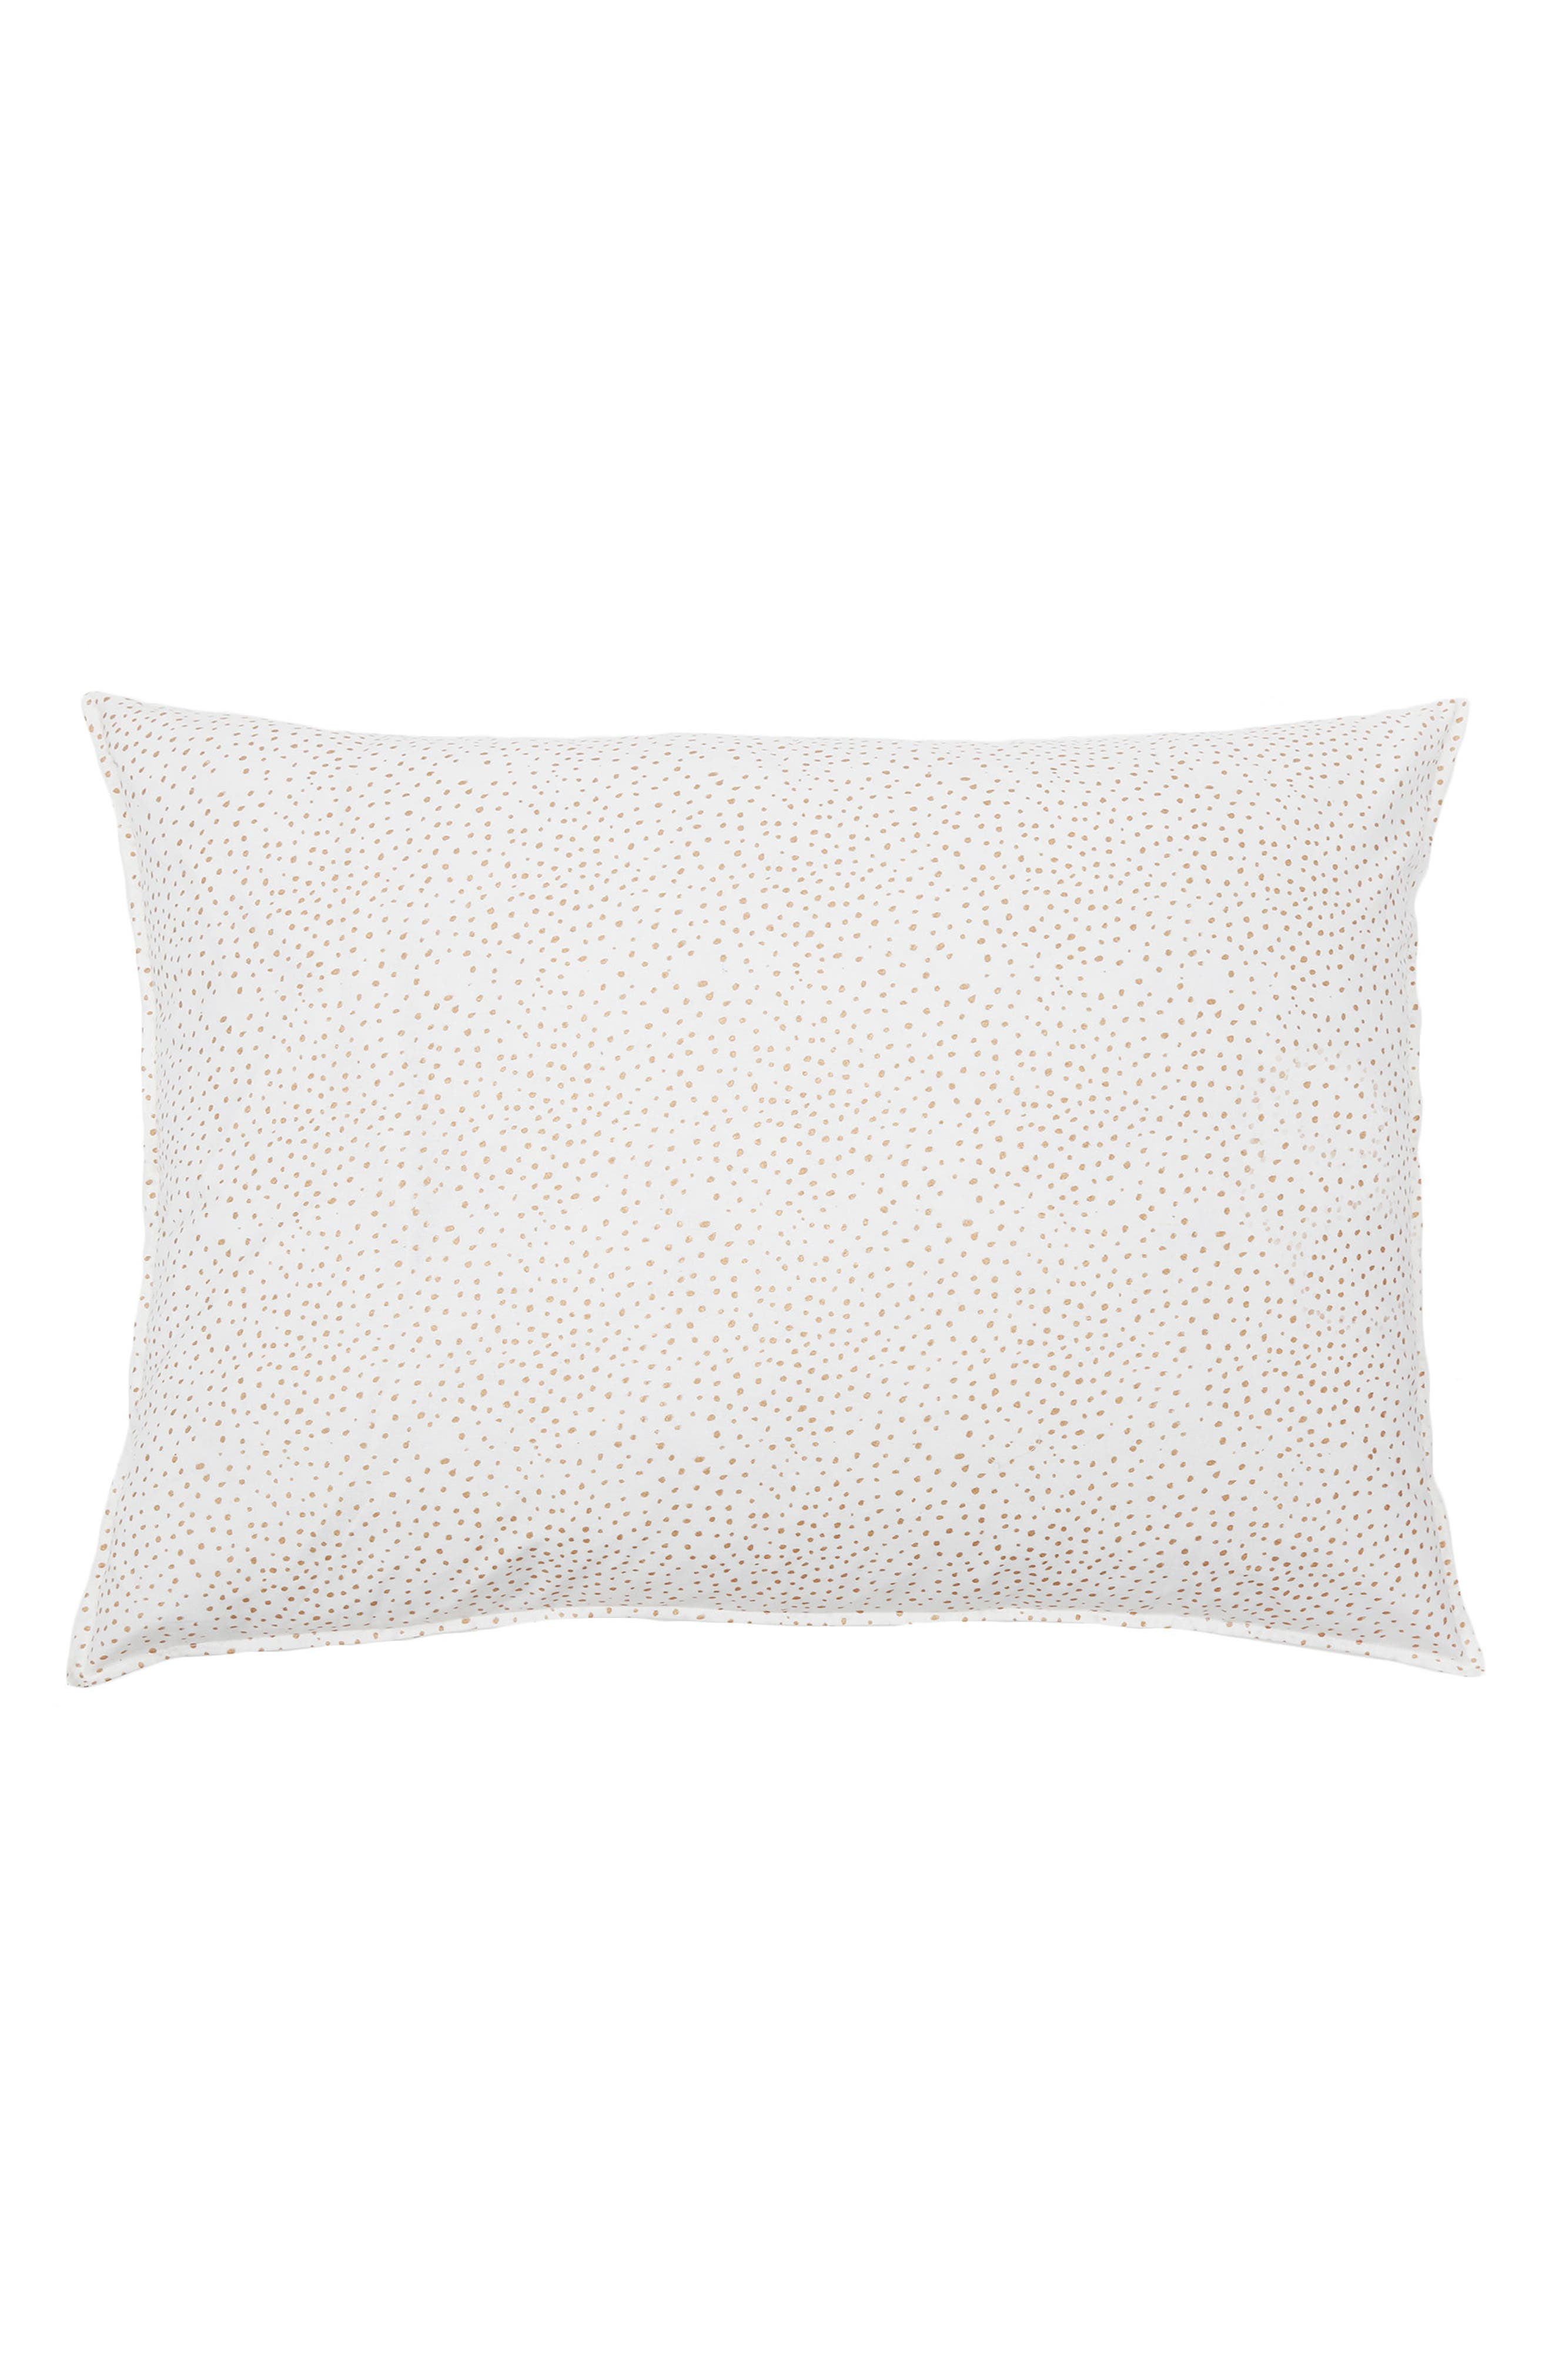 Alternate Image 1 Selected - Pom Pom at Home Dot Big Accent Pillow